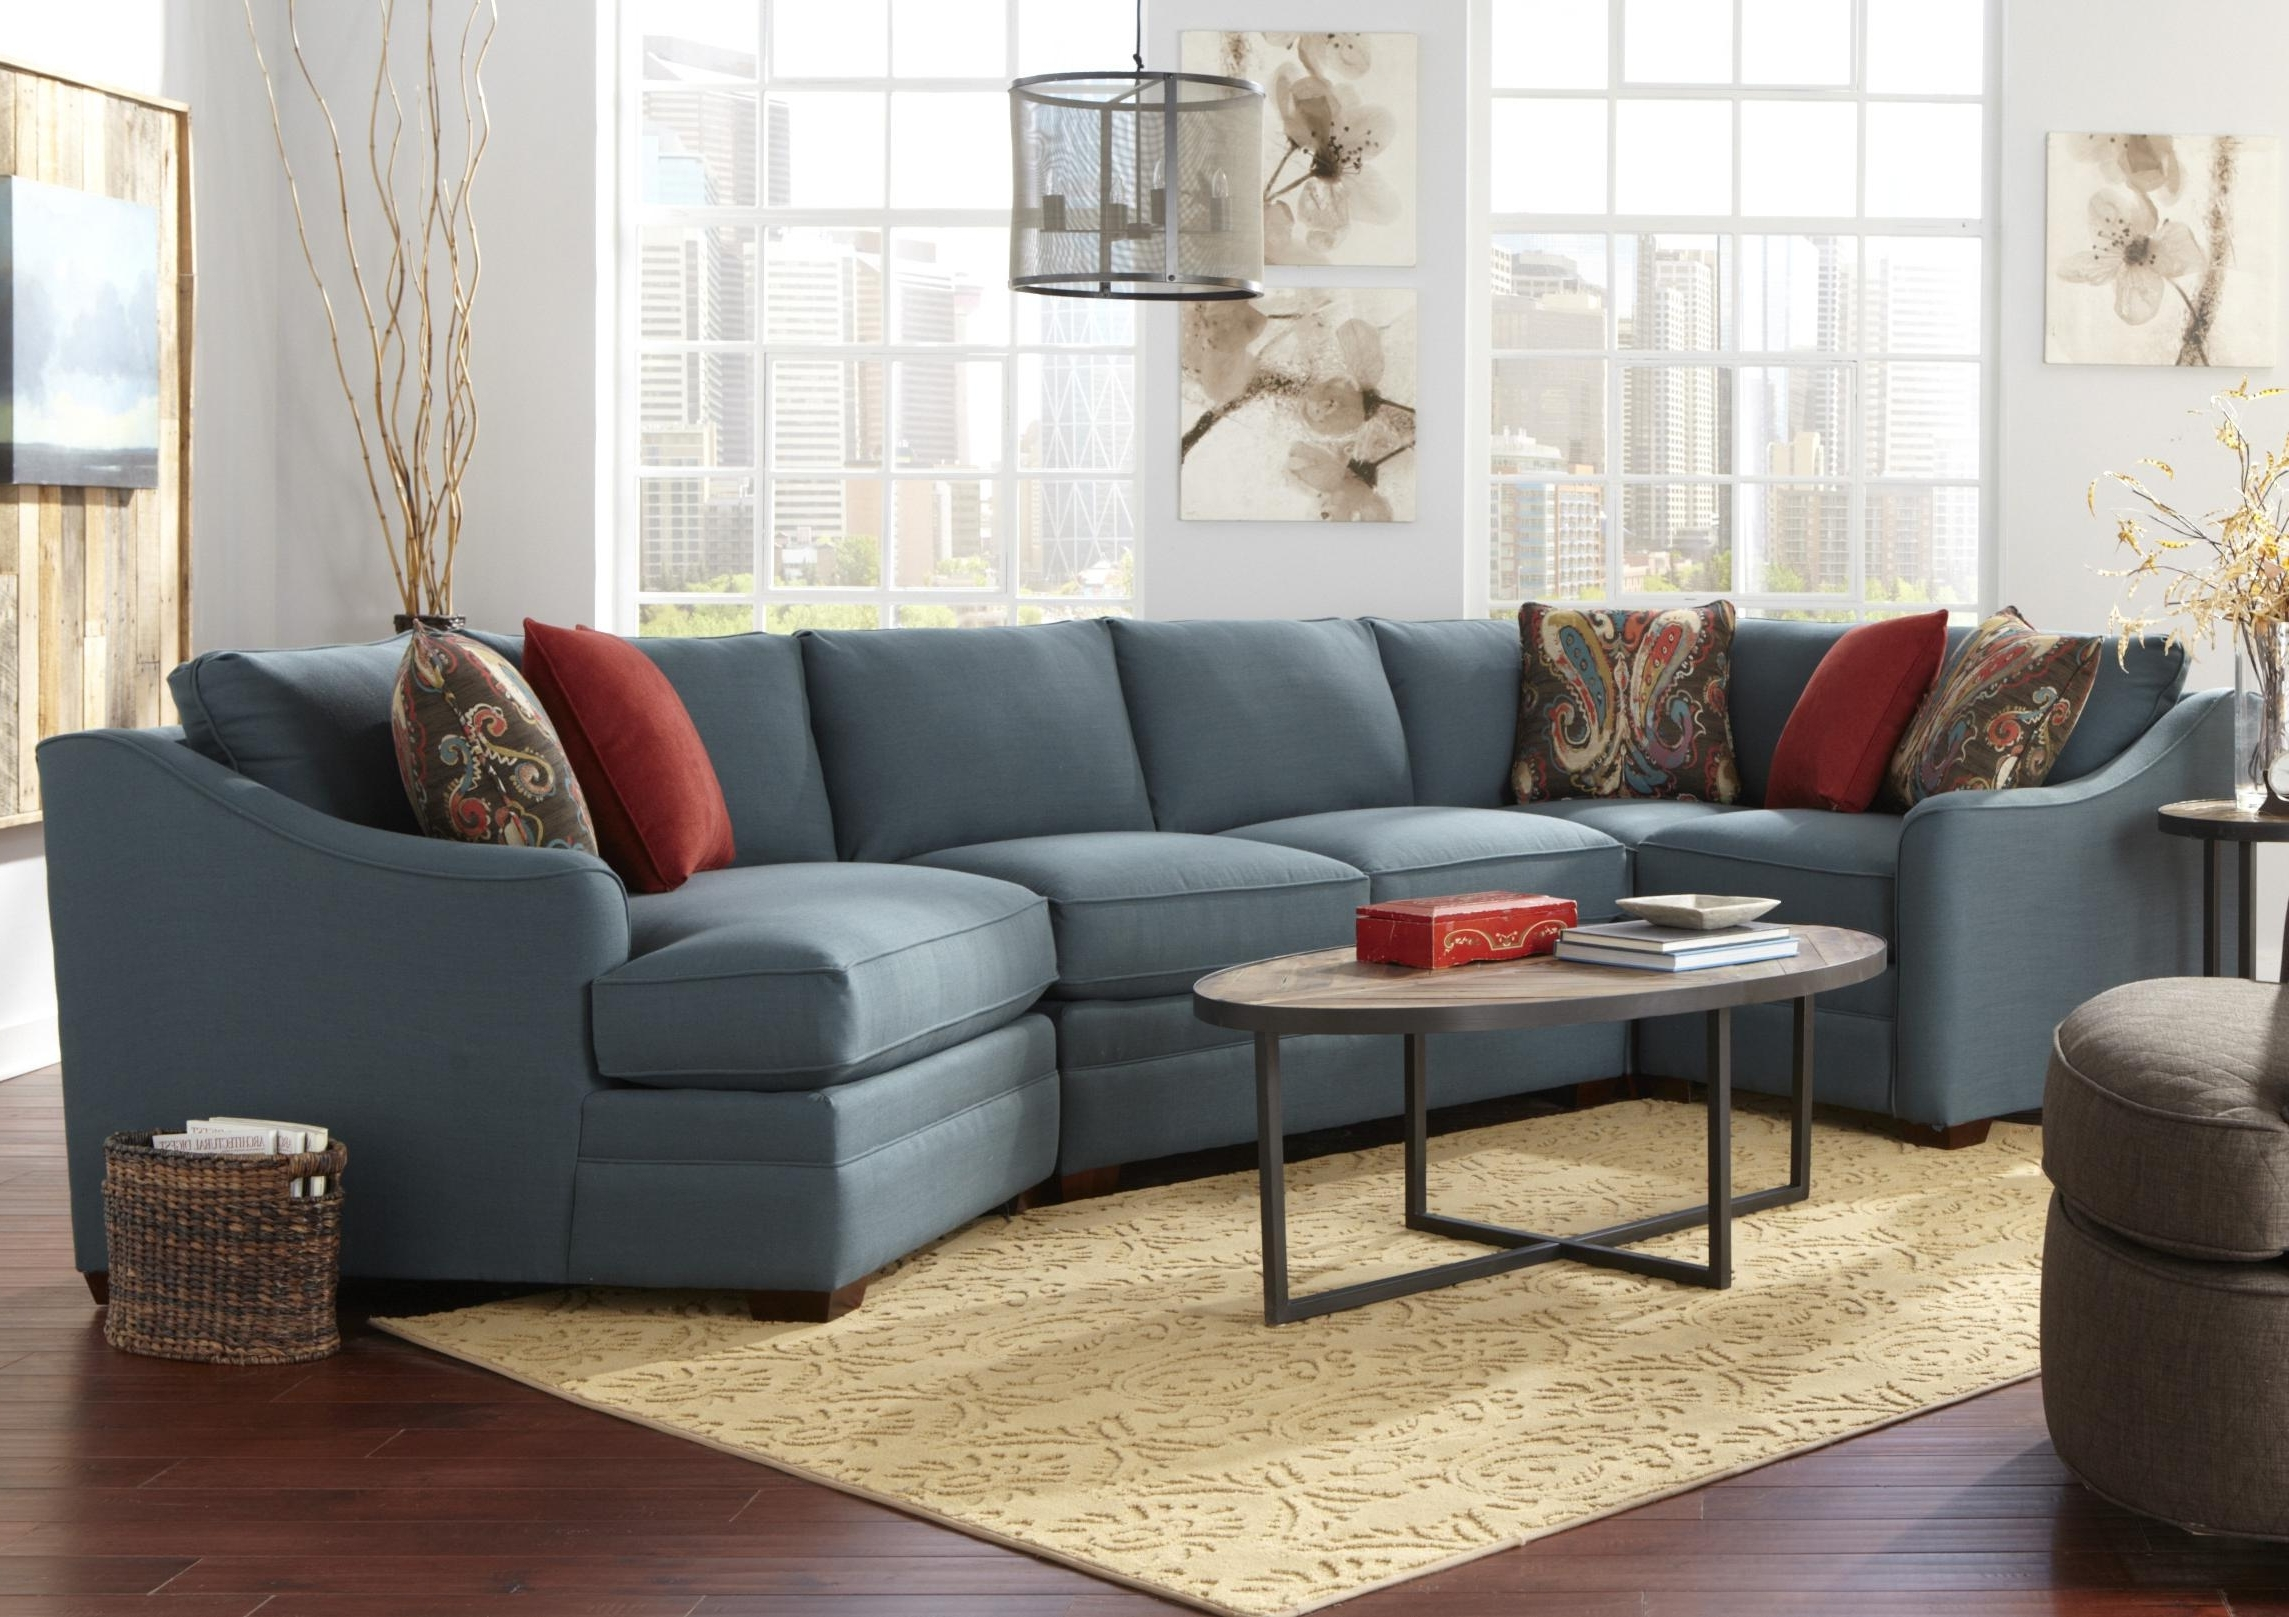 Widely Used Four Piece <B>Customizable</b> Sectional Sofa With Raf Cuddler In 4 Piece Sectional Sofas With Chaise (View 15 of 15)